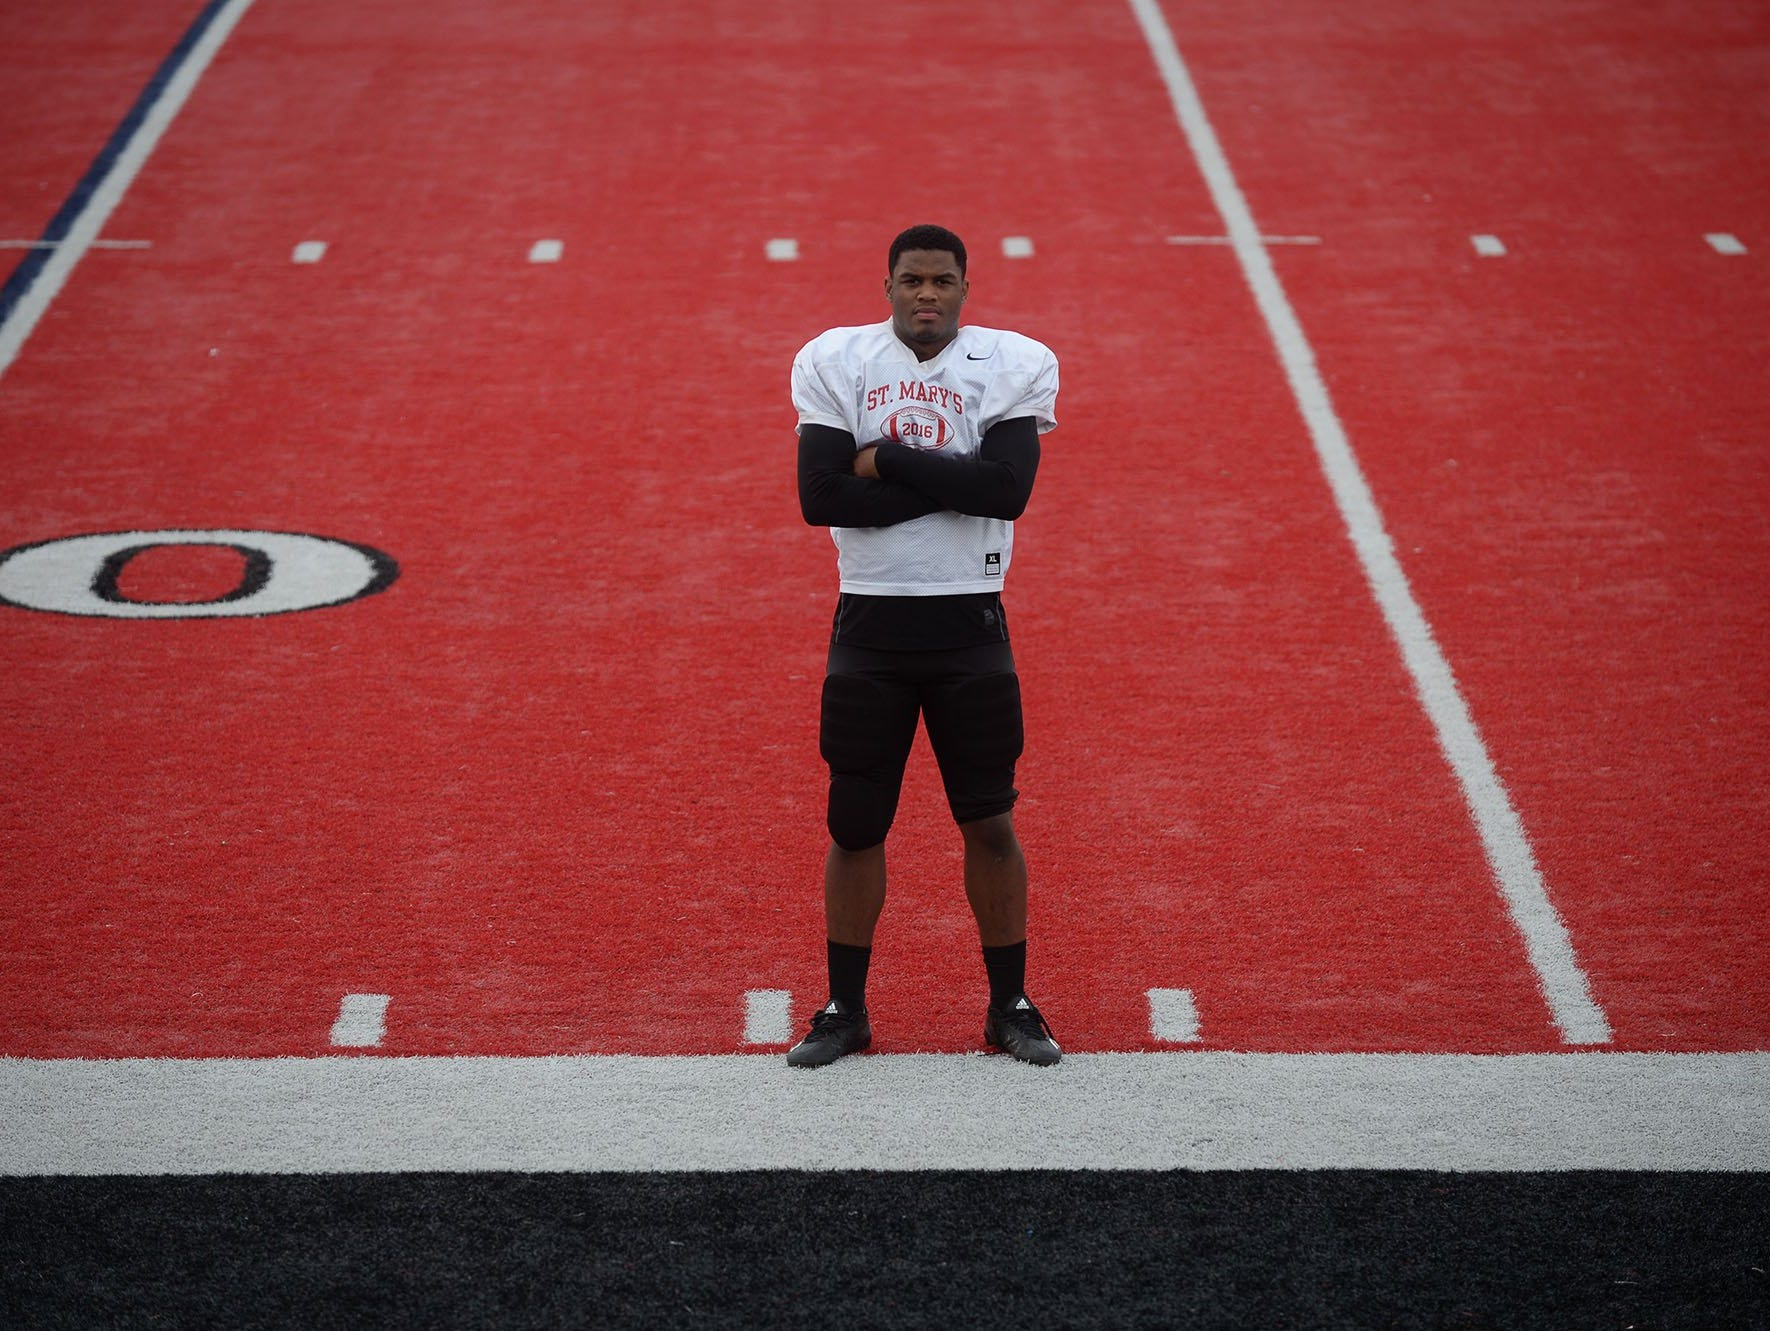 Orchard Lake St. Mary's linebacker Josh Ross poses before practice Tuesday, Nov. 8, 2016 at Orchard Lake St. Mary's.